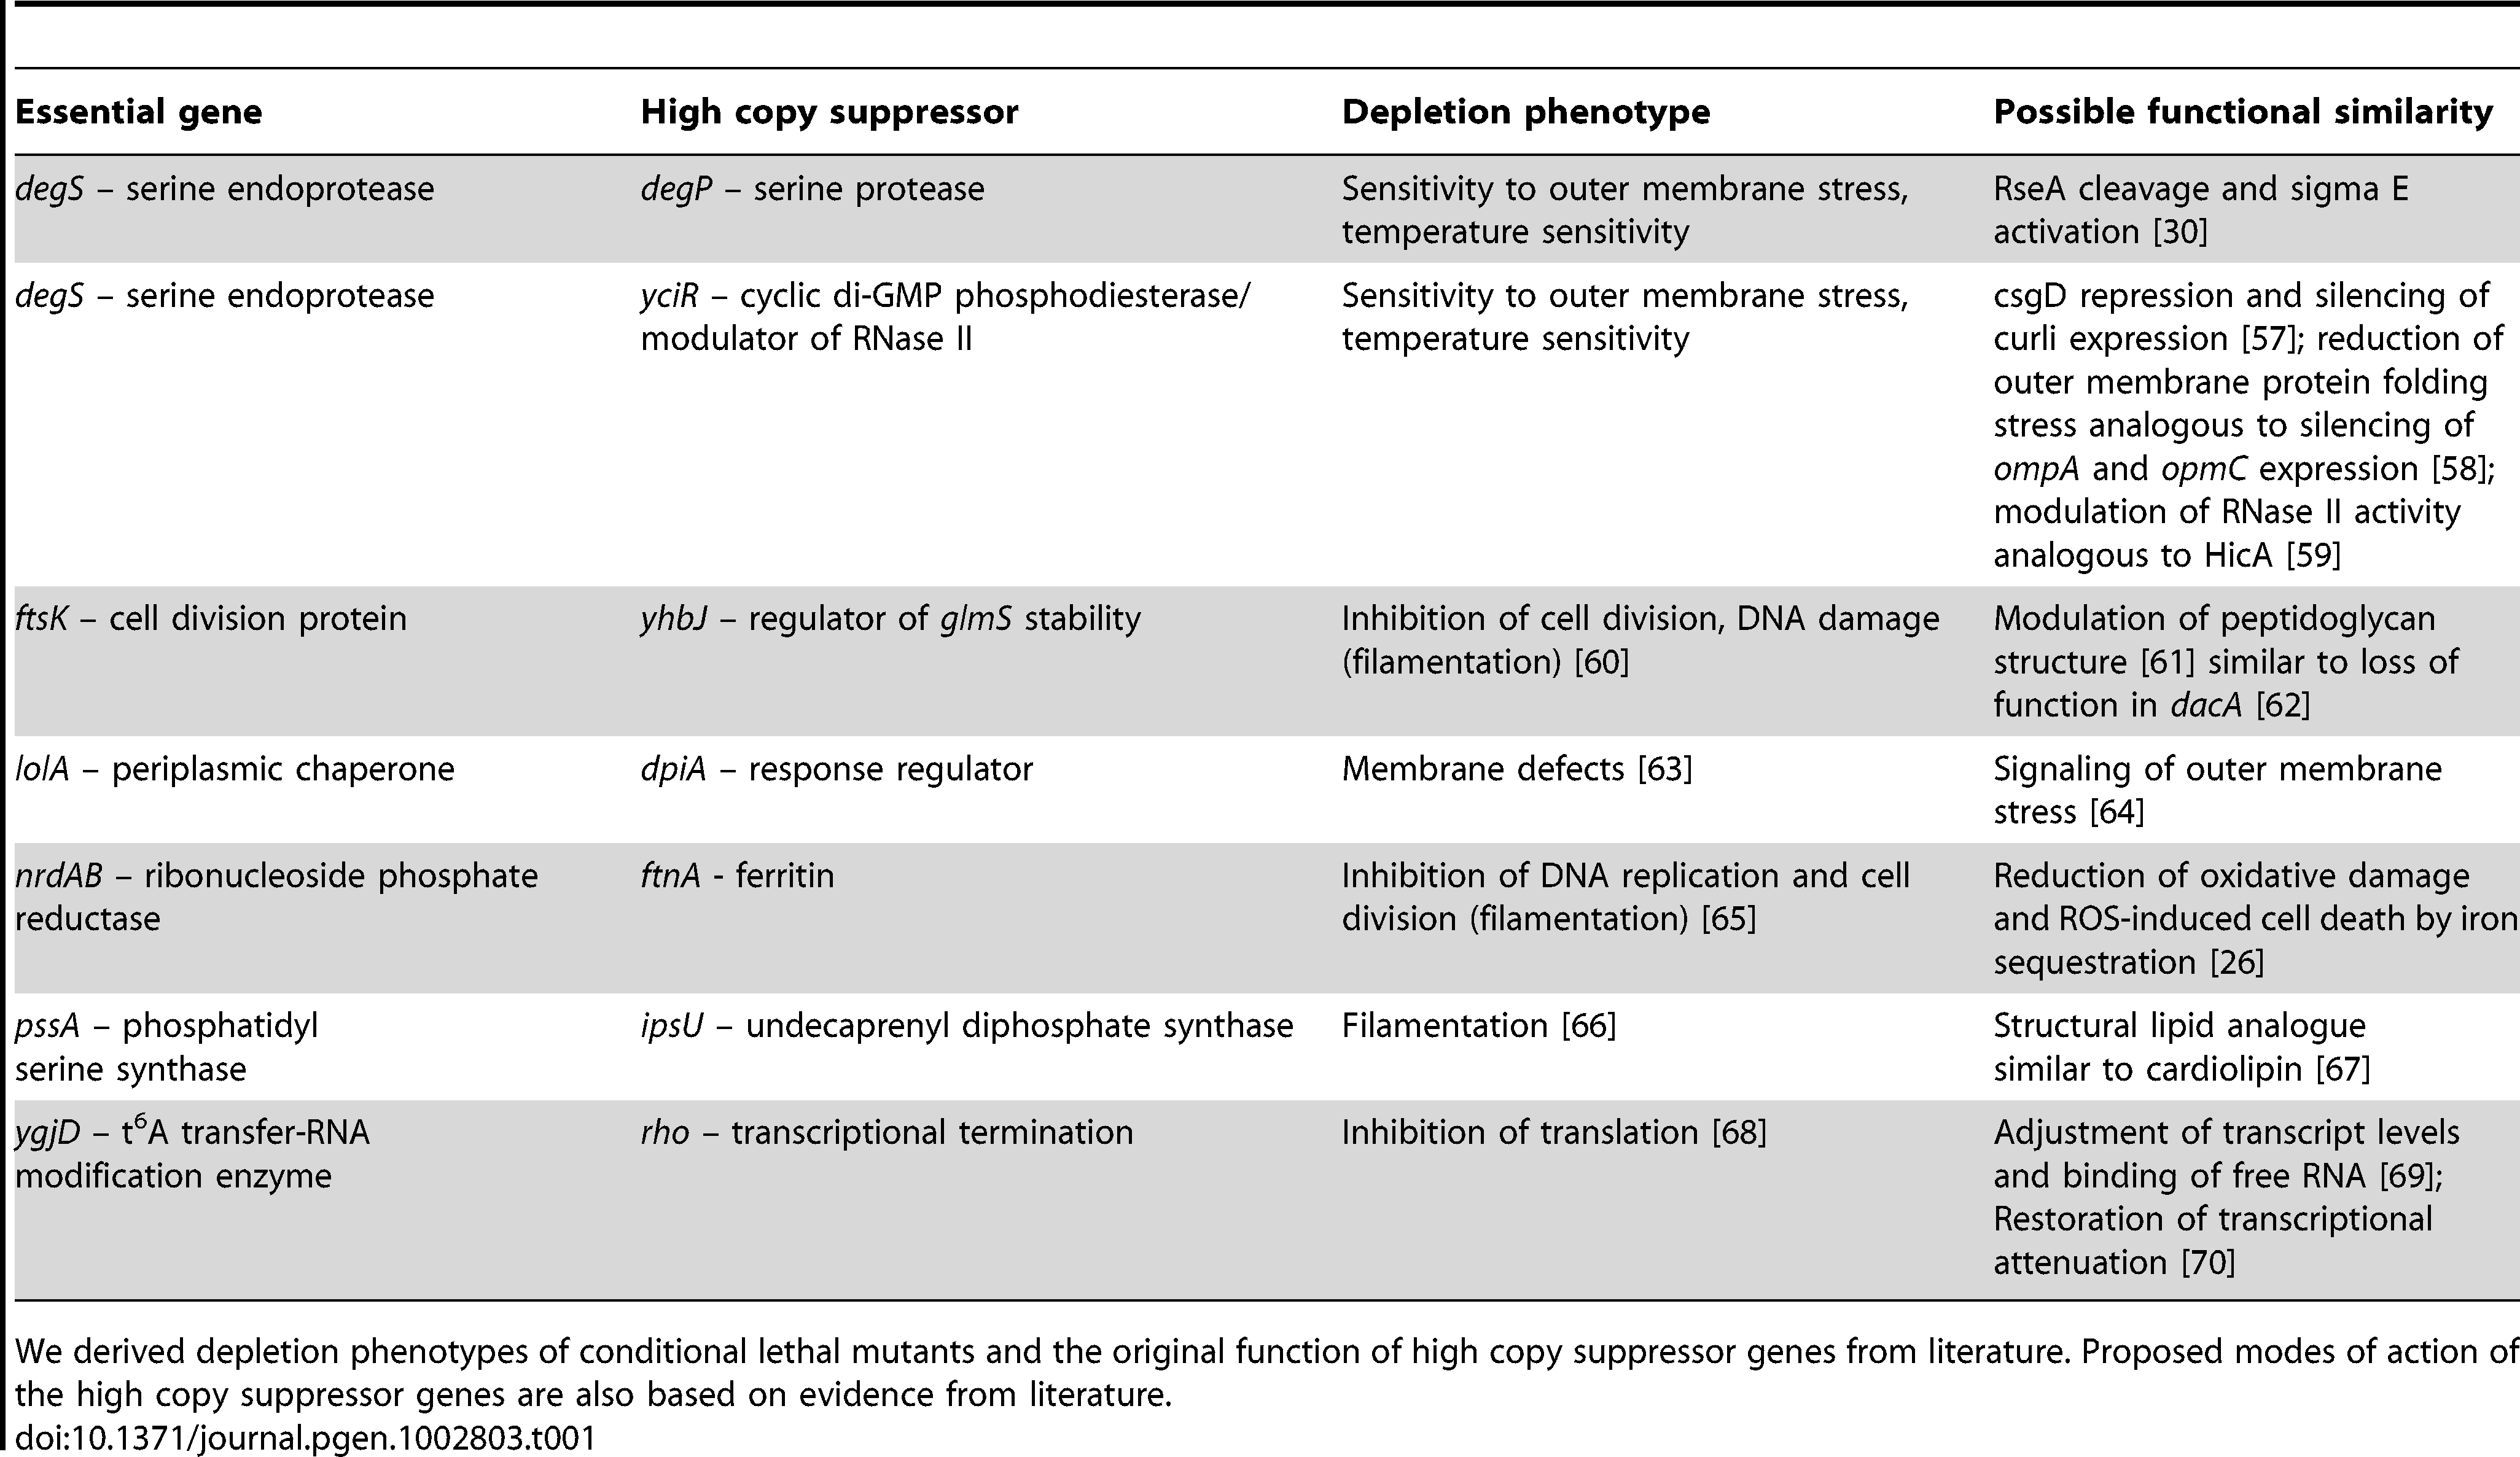 Possible functional similarities between non-complementing high copy suppressors and essential genes.